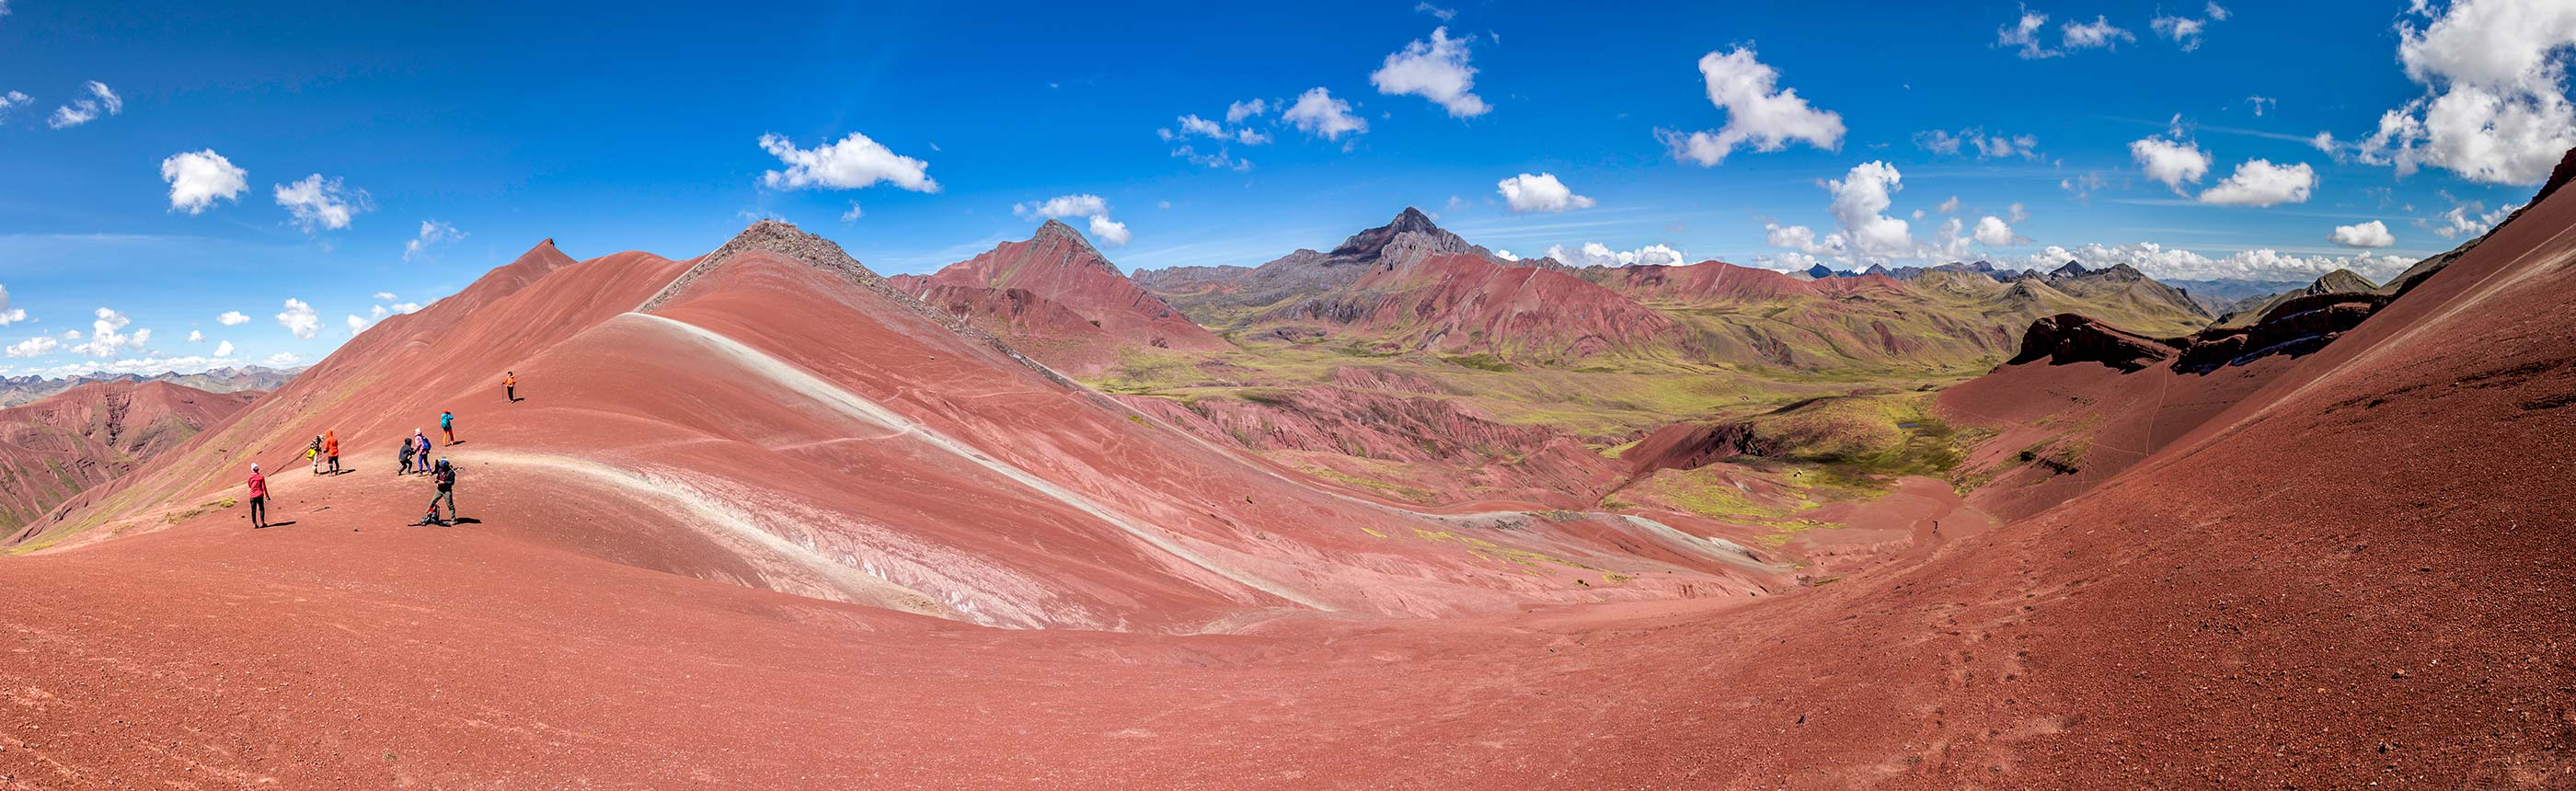 Trek to Rainbow Mountain and Red Valley 2 Days